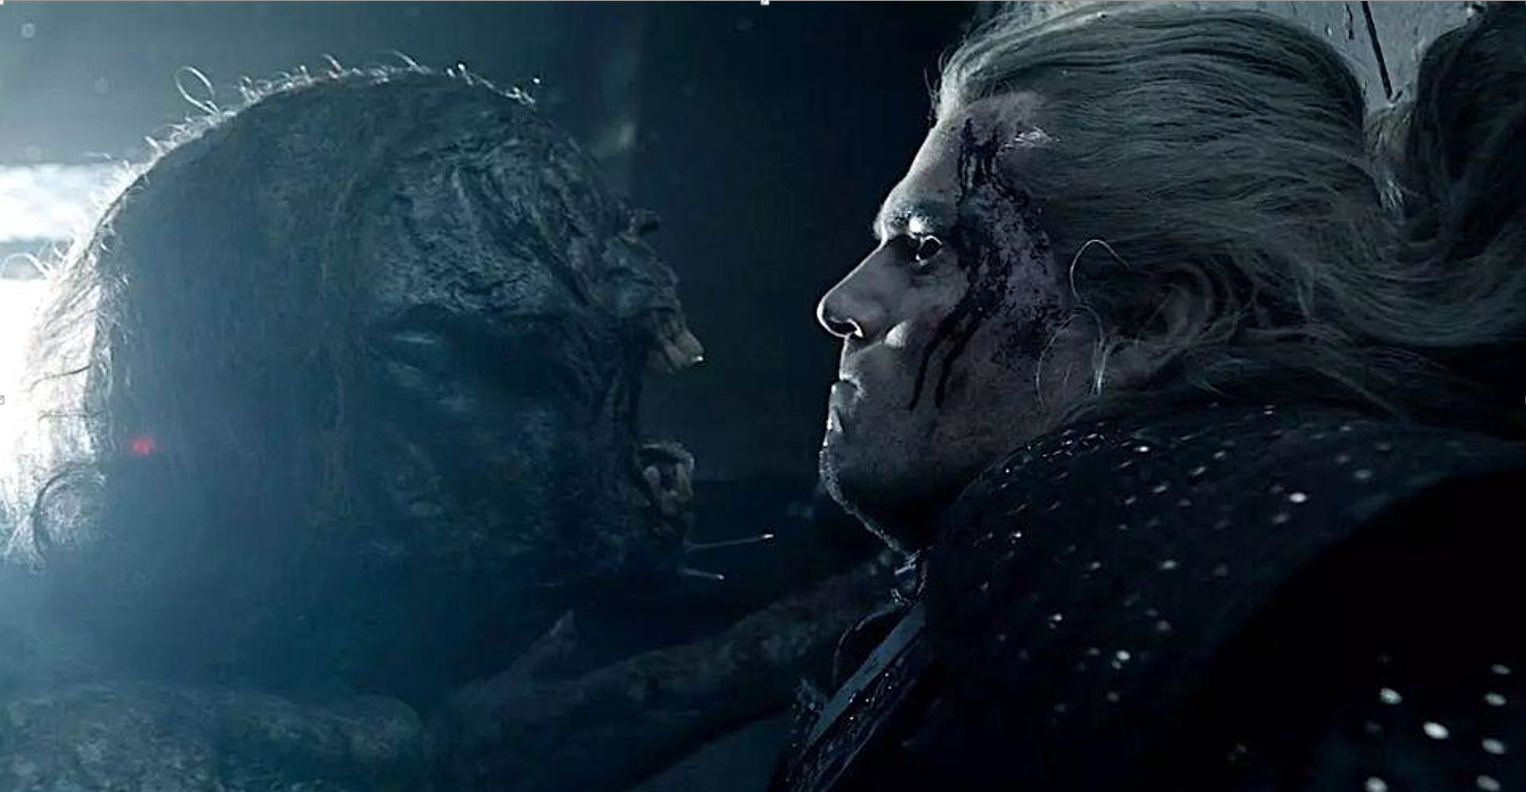 The-Witcher-Season-2-New-Monsters-Briefly-Seen-In-Halloween-Video